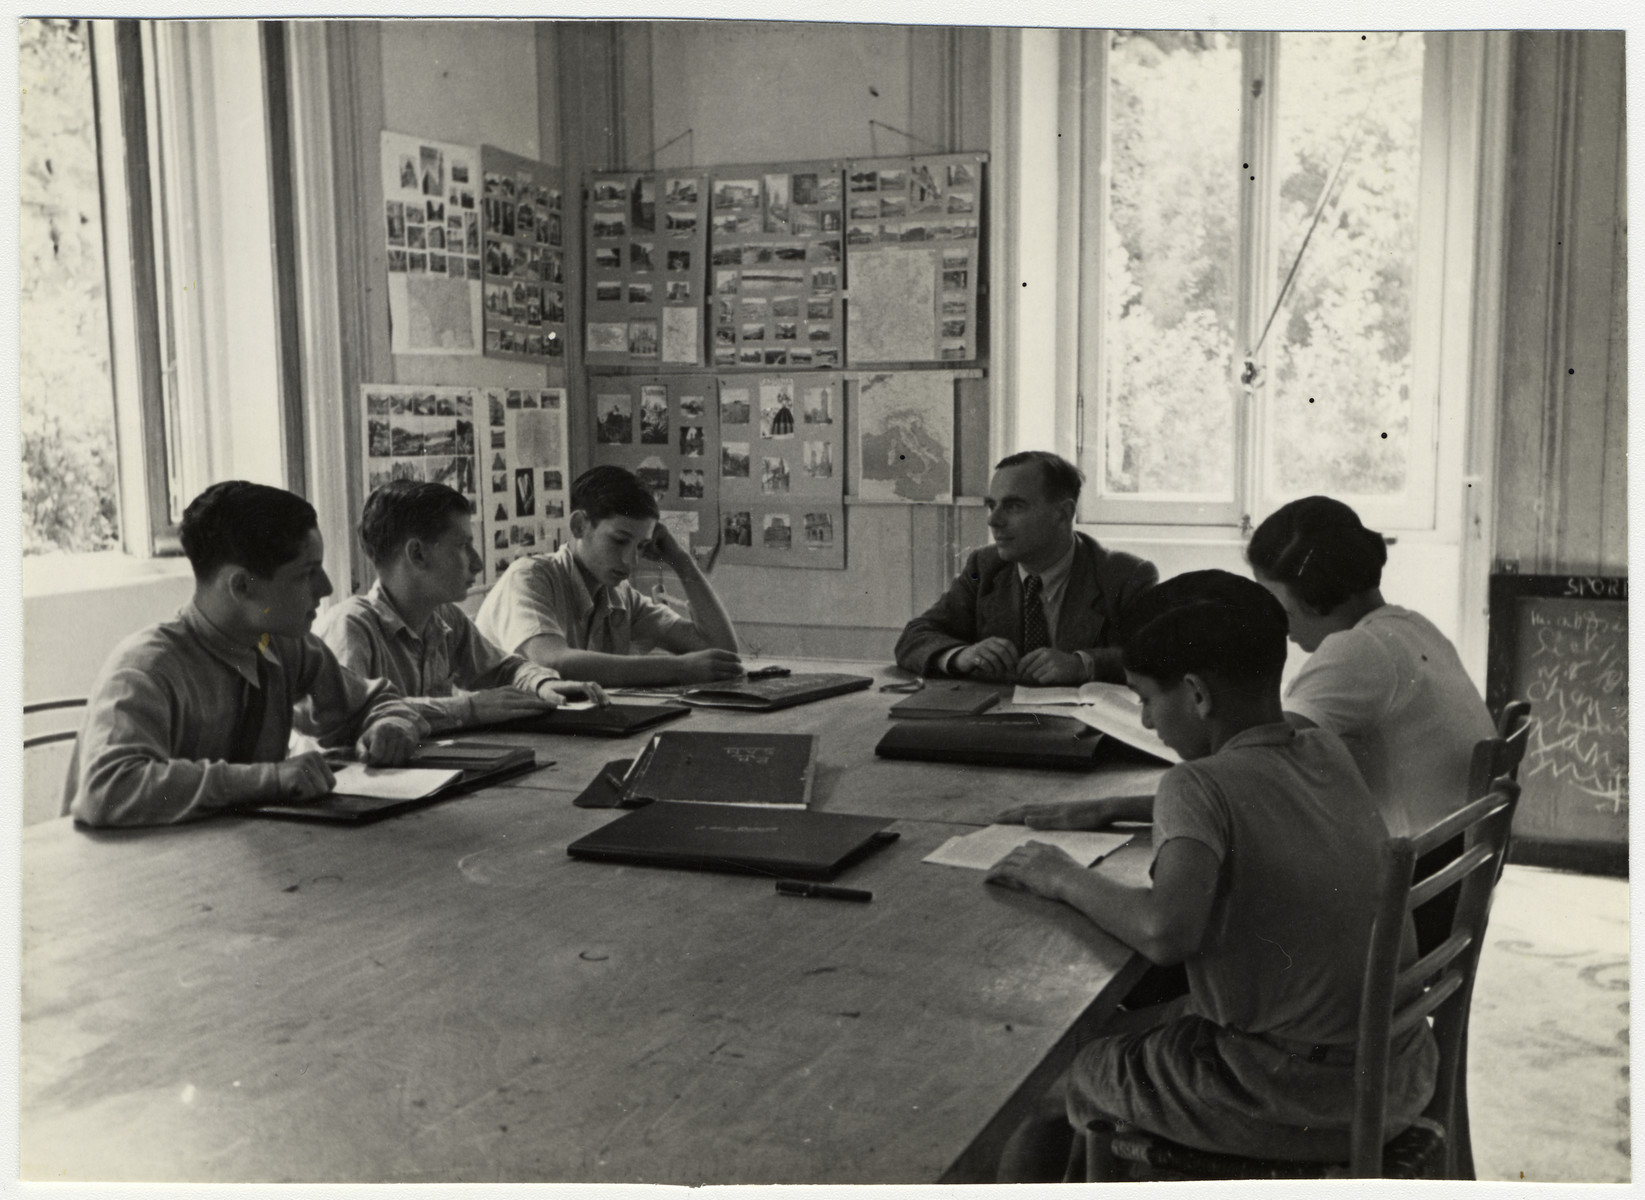 Older students study in a classroom decorated with photographs and posters in the Mediterranean School in Recco, Italy.